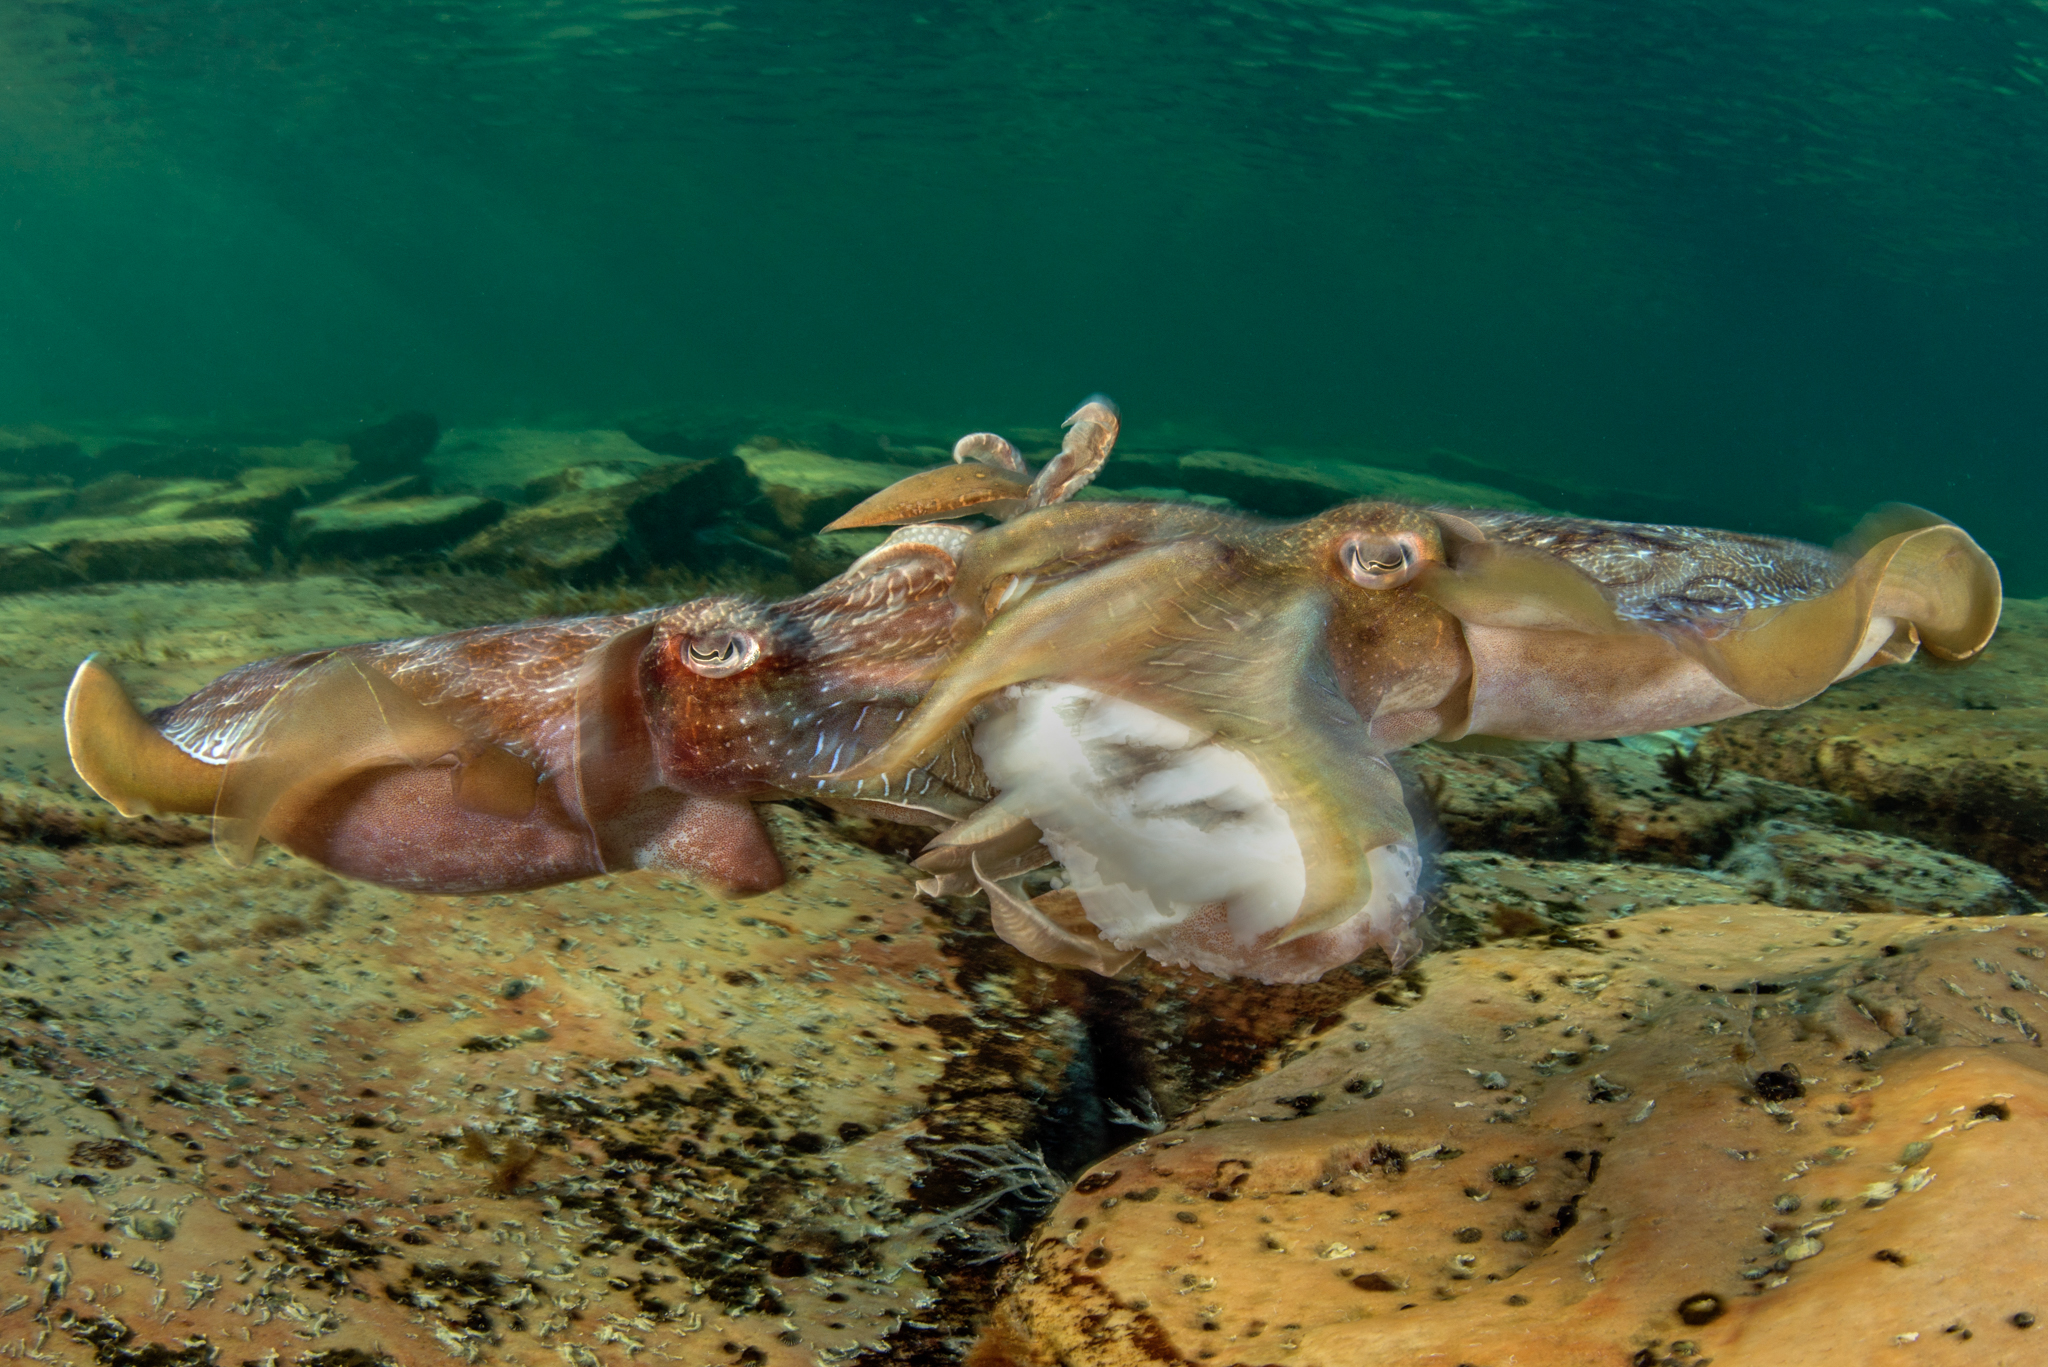 In a rarely witnessed scene, two cuttlefish fight over the body of a dead one, presumably in the hopes of feeding on the carcass.